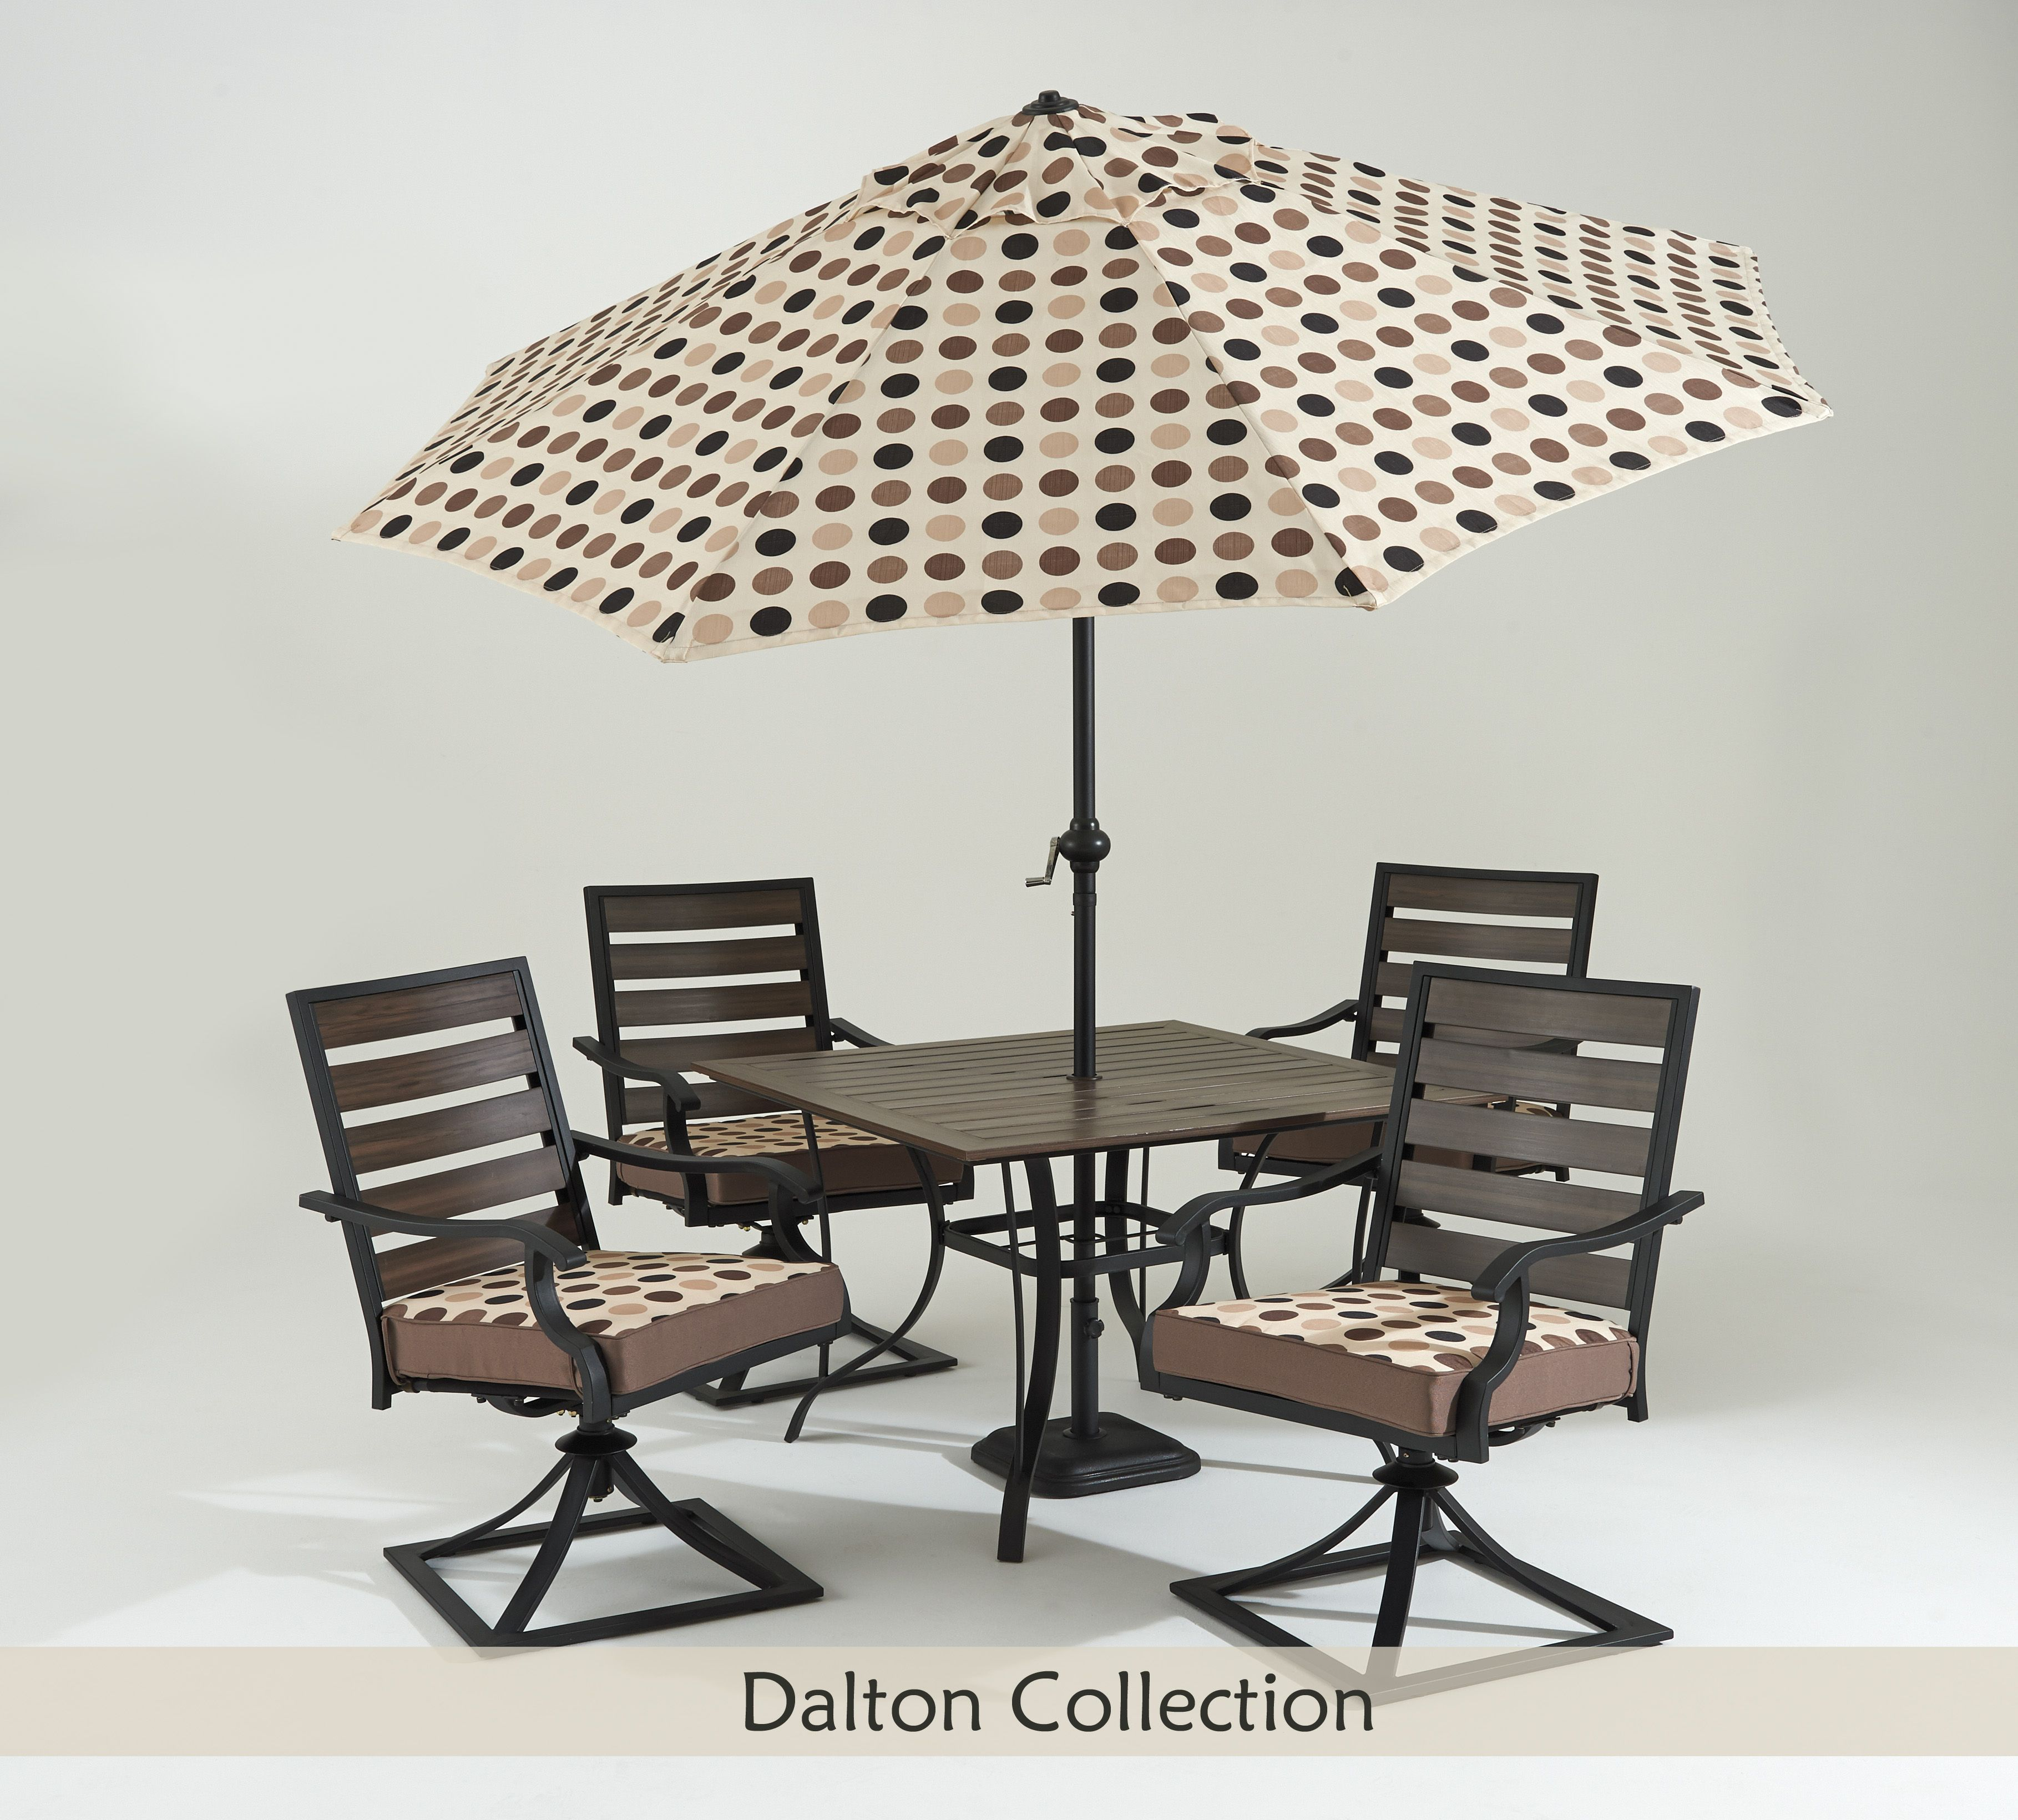 This reversable cusion set suits any occasion and brings variety to your #patio.